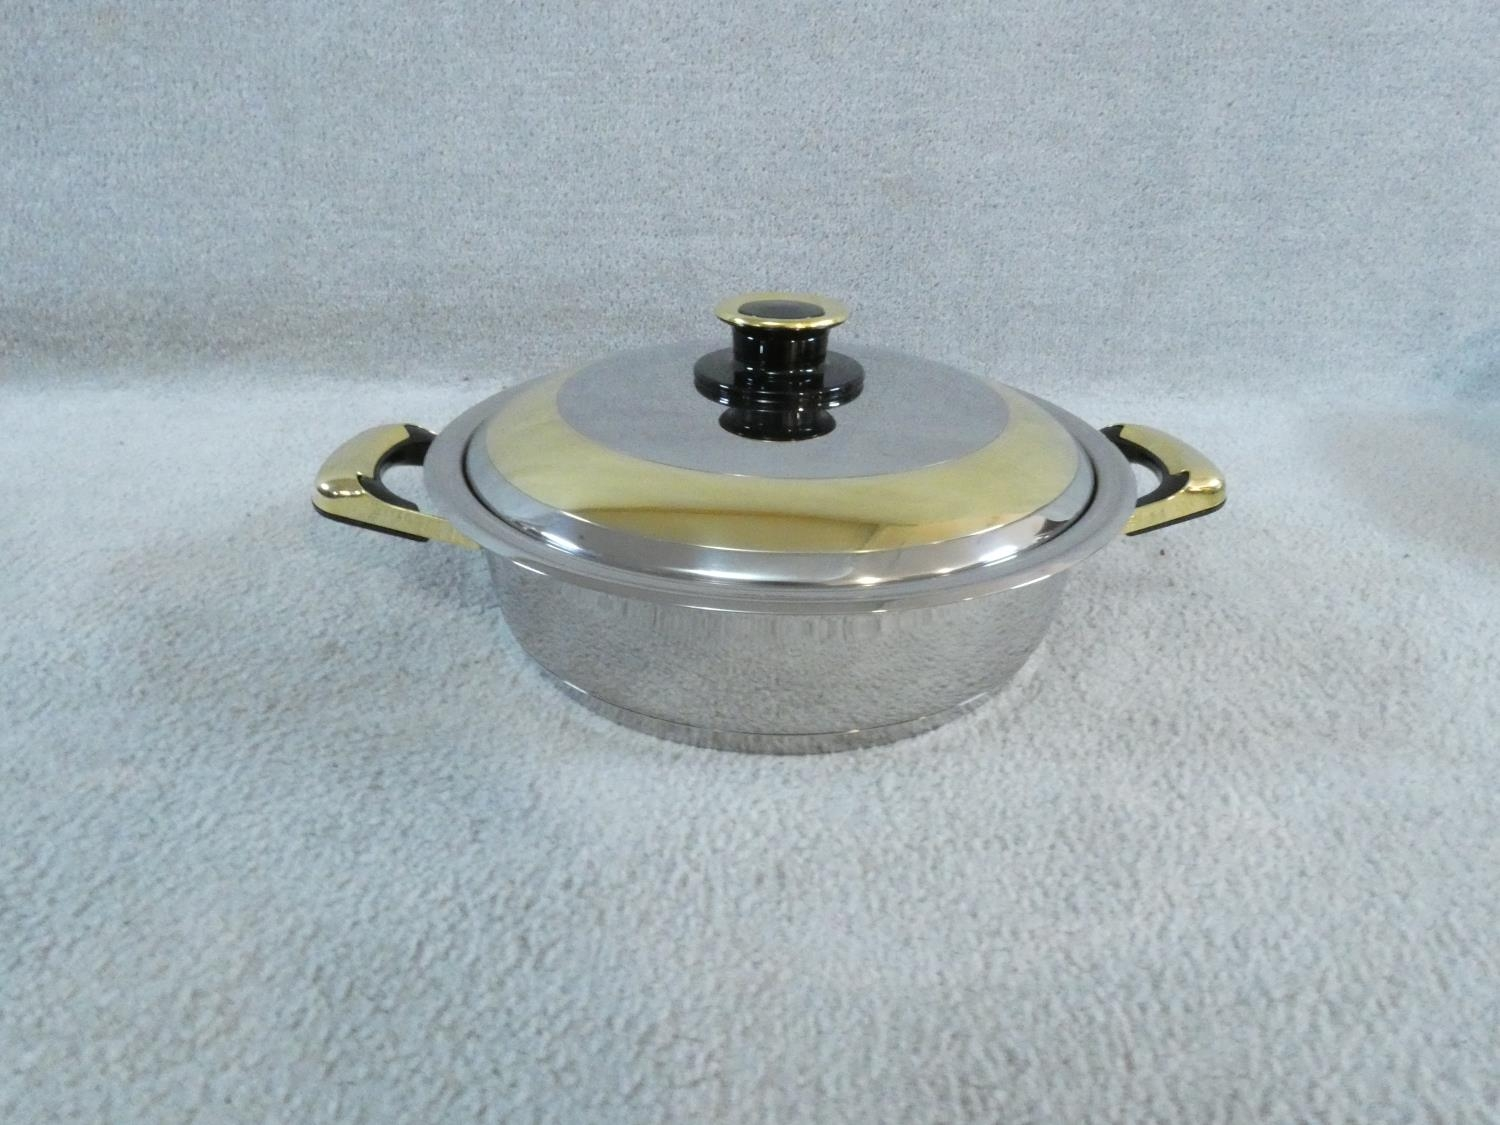 A set of boxed stainless steel as new Cameo Royale pans and cookware with 24k gold plated - Image 13 of 22